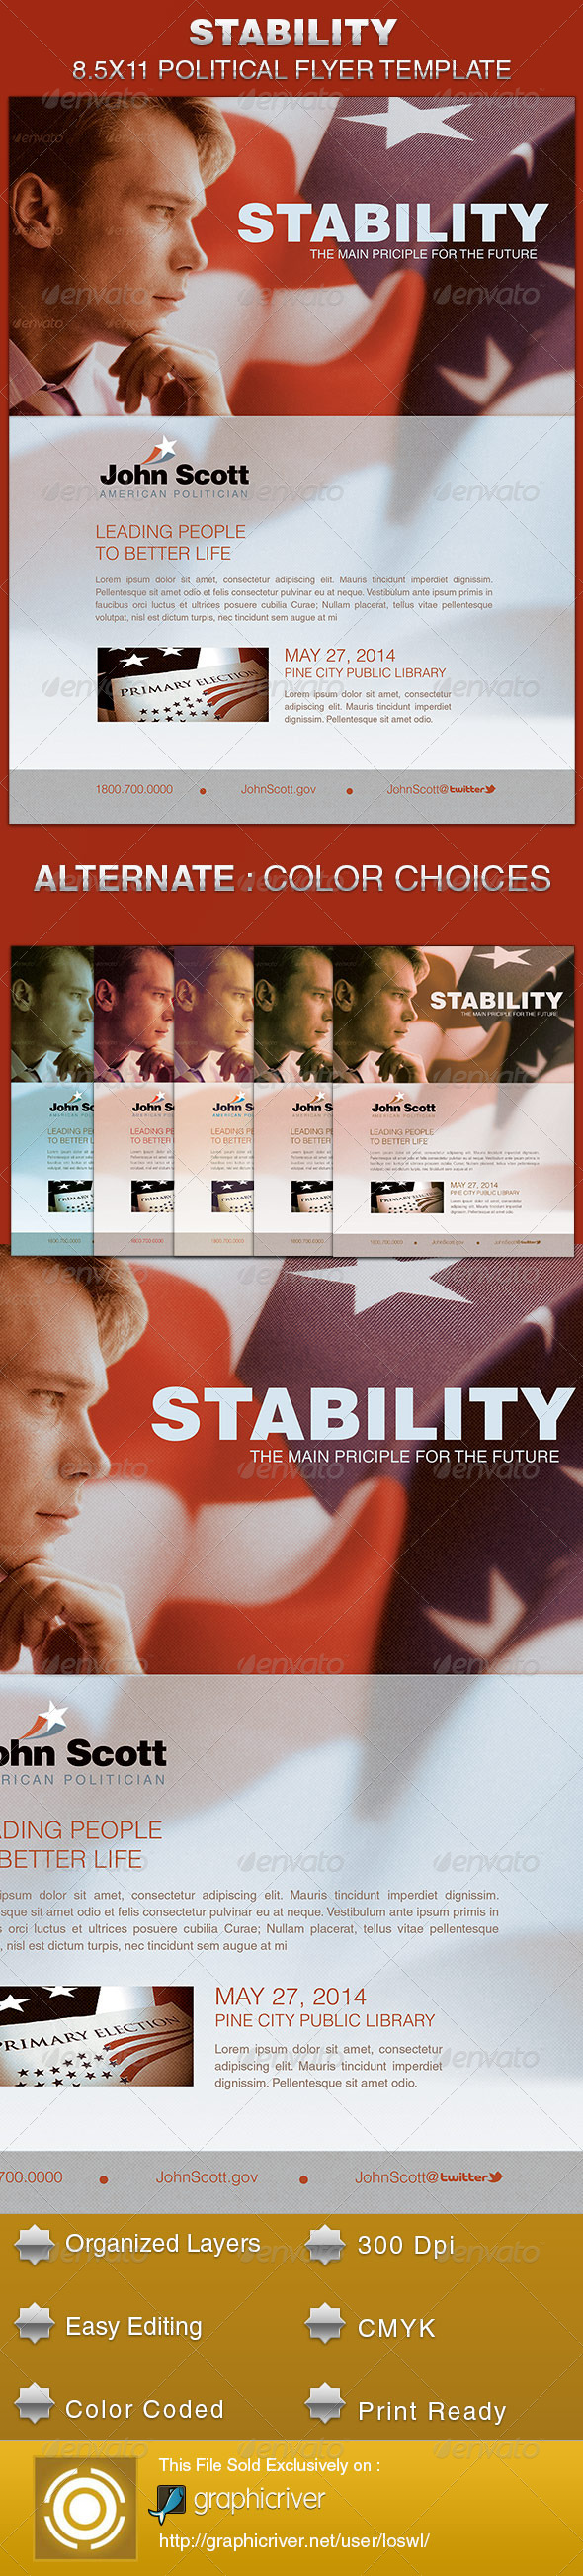 GraphicRiver Stability Political Flyer Template 5523338